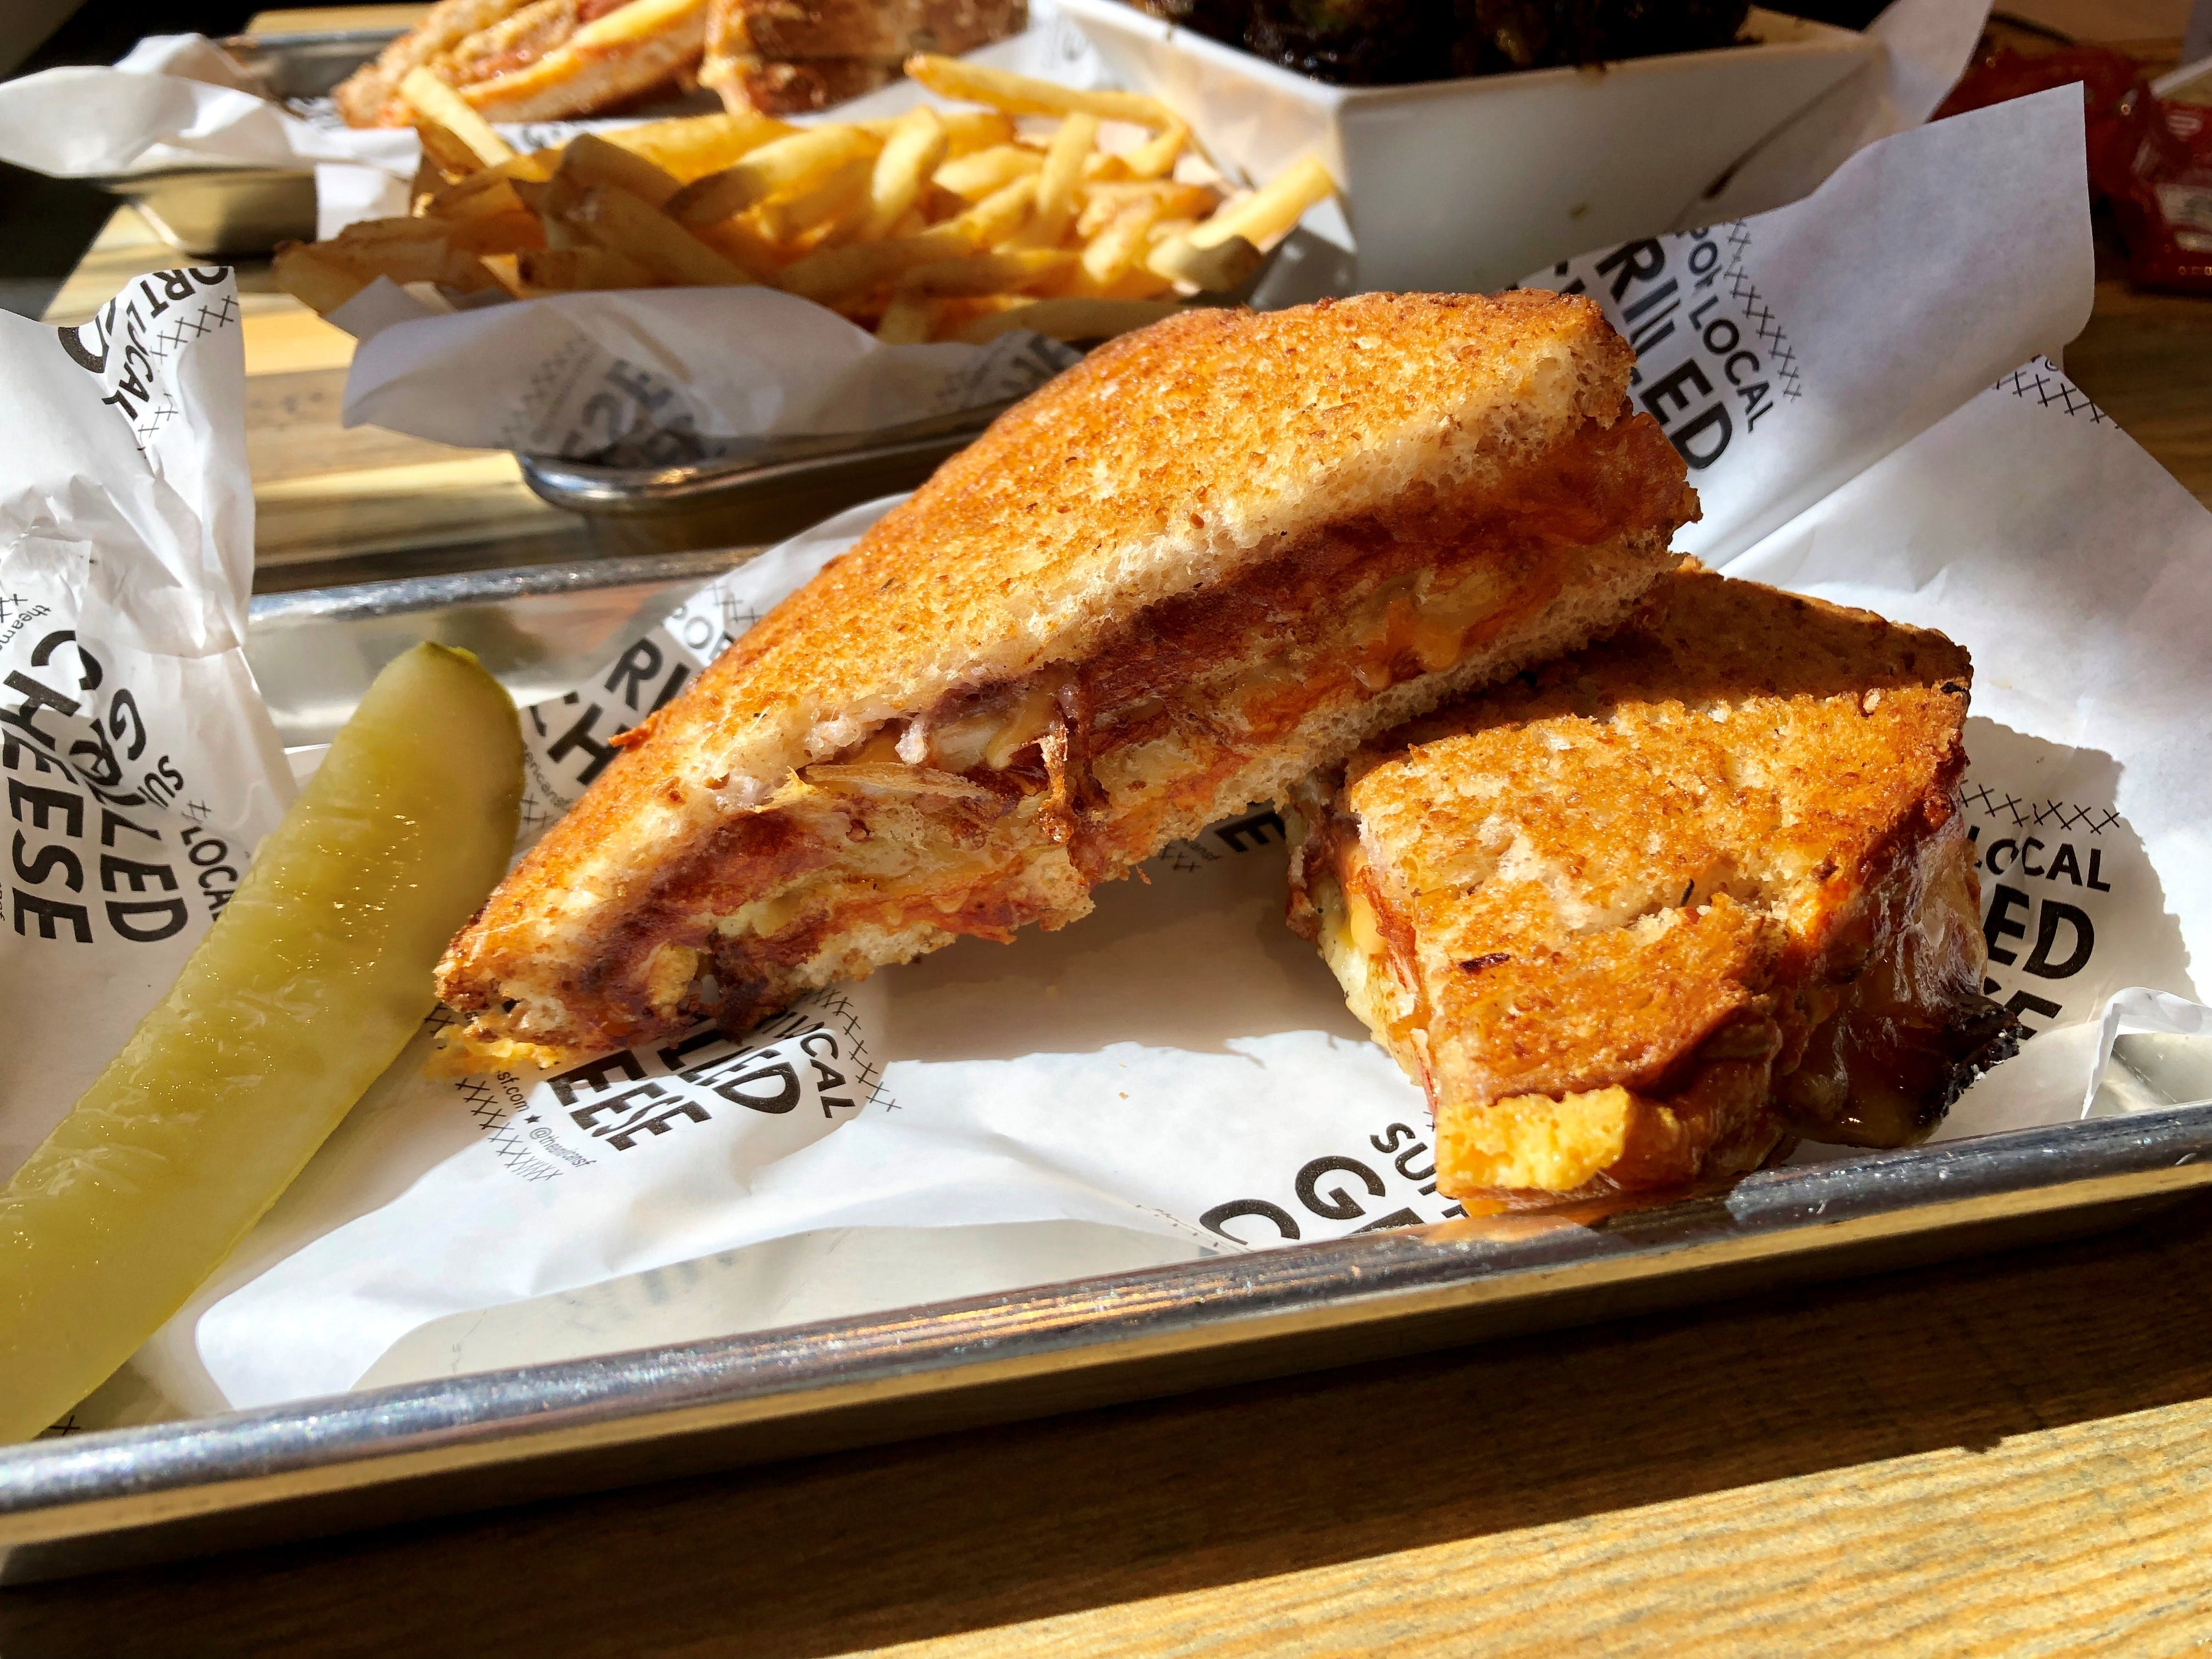 A holiday special grilled cheese made with turkey, stuffing, mashed potatoes, cranberry sauce and gravy from The American Grilled Cheese Kitchen.